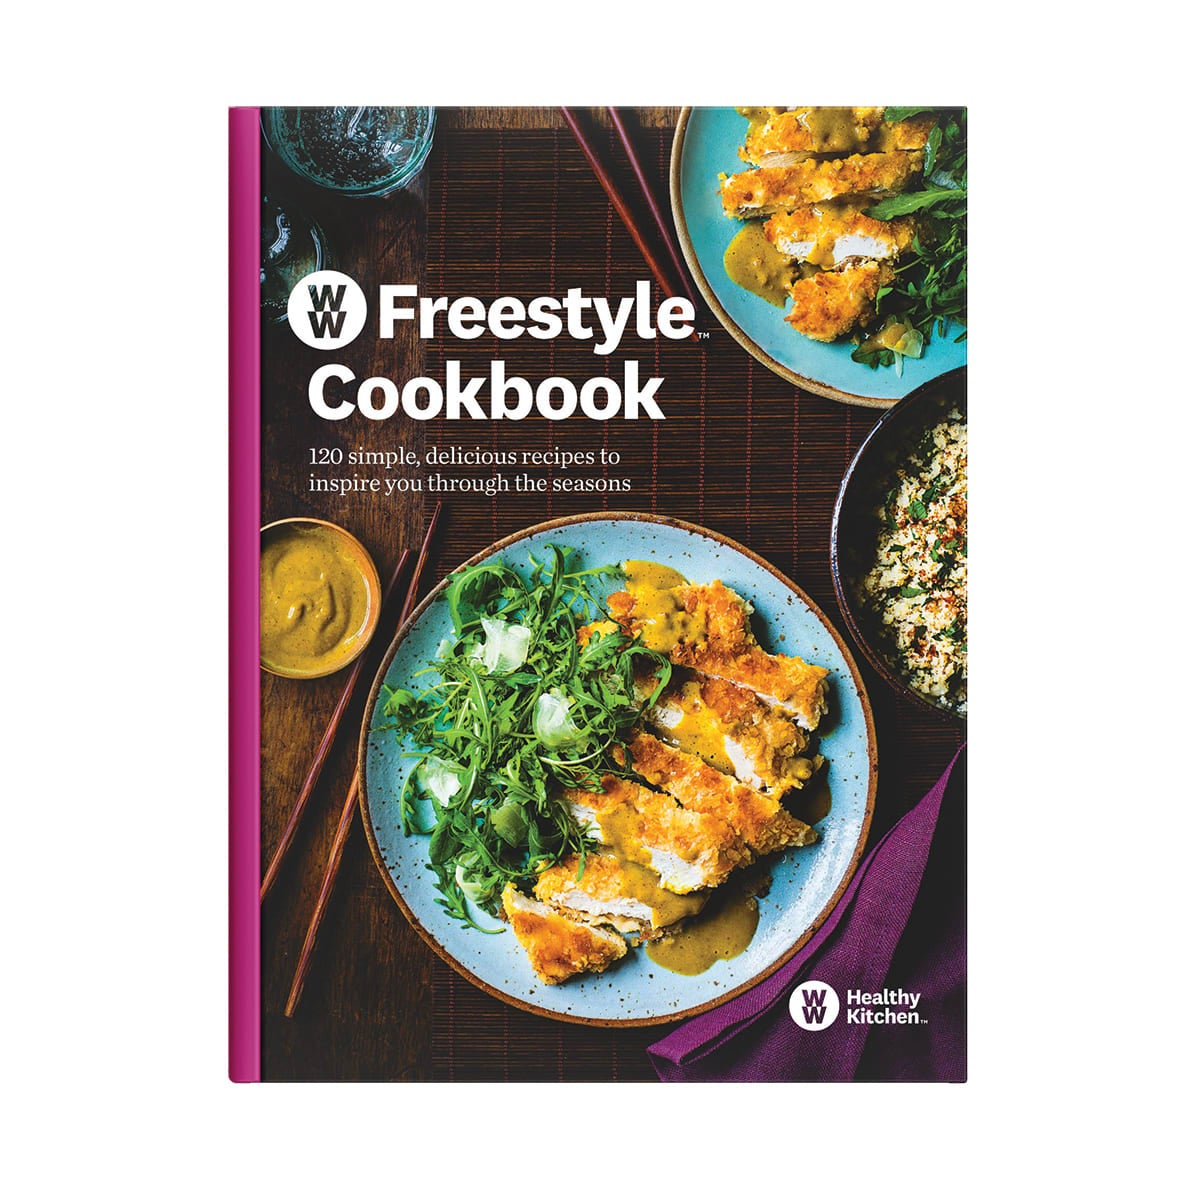 WW Freestyle Cookbook ,120 great-tasting recipes for all seasons, bright ideas, brilliant tips,main meals, breakfasts, snacks and desserts,